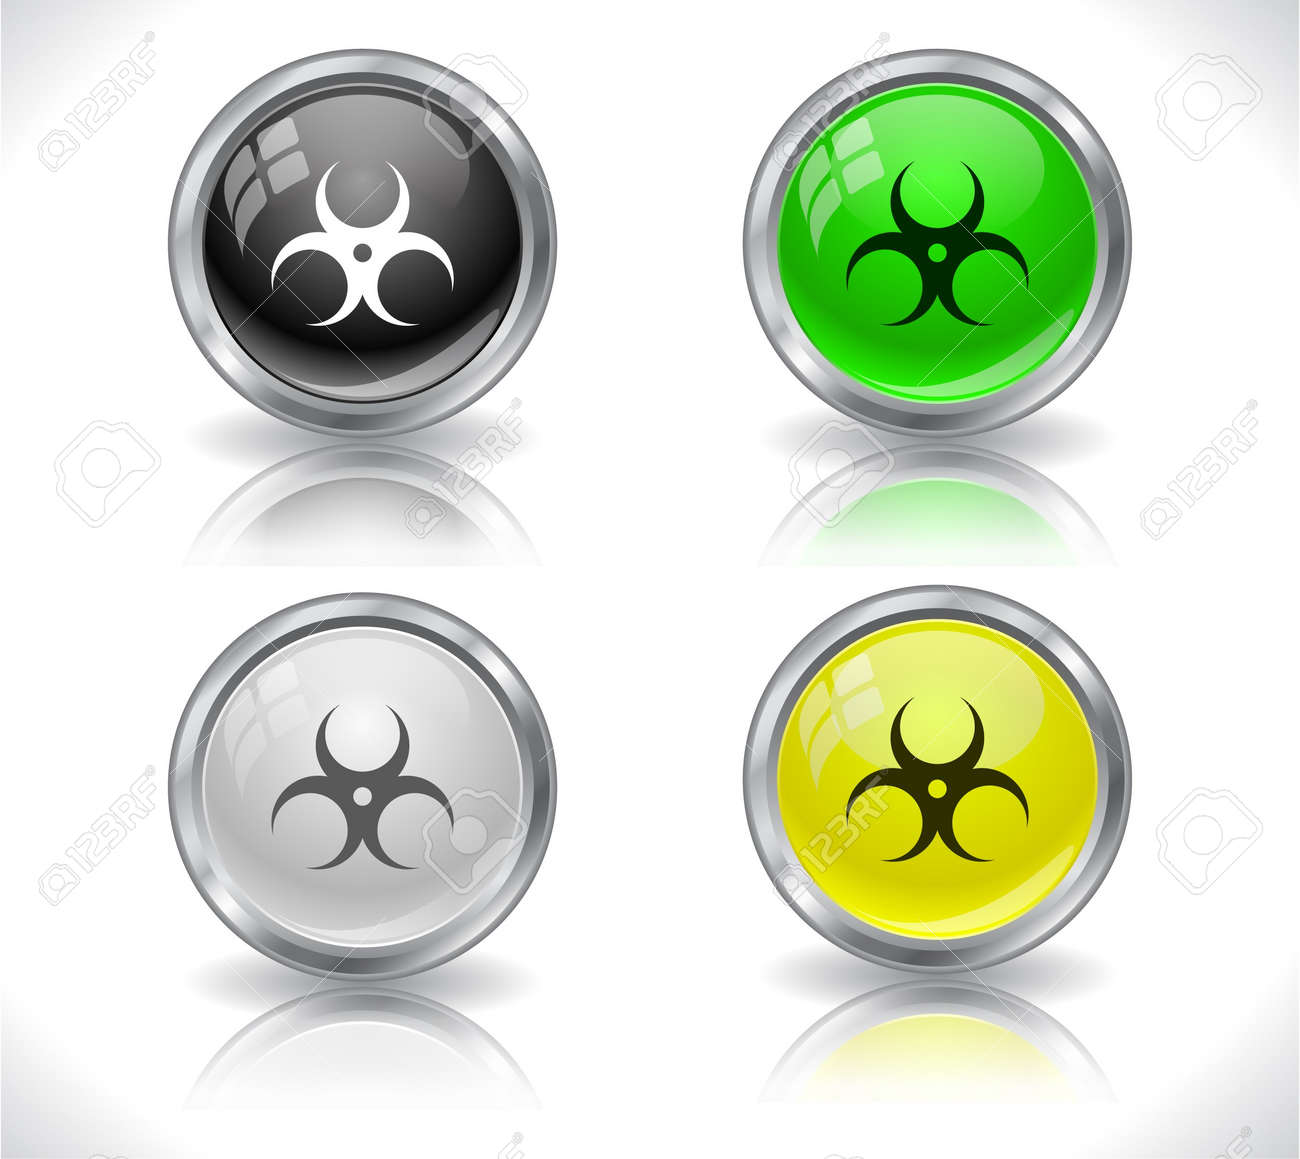 Buttons for web. Stock Photo - 7910329